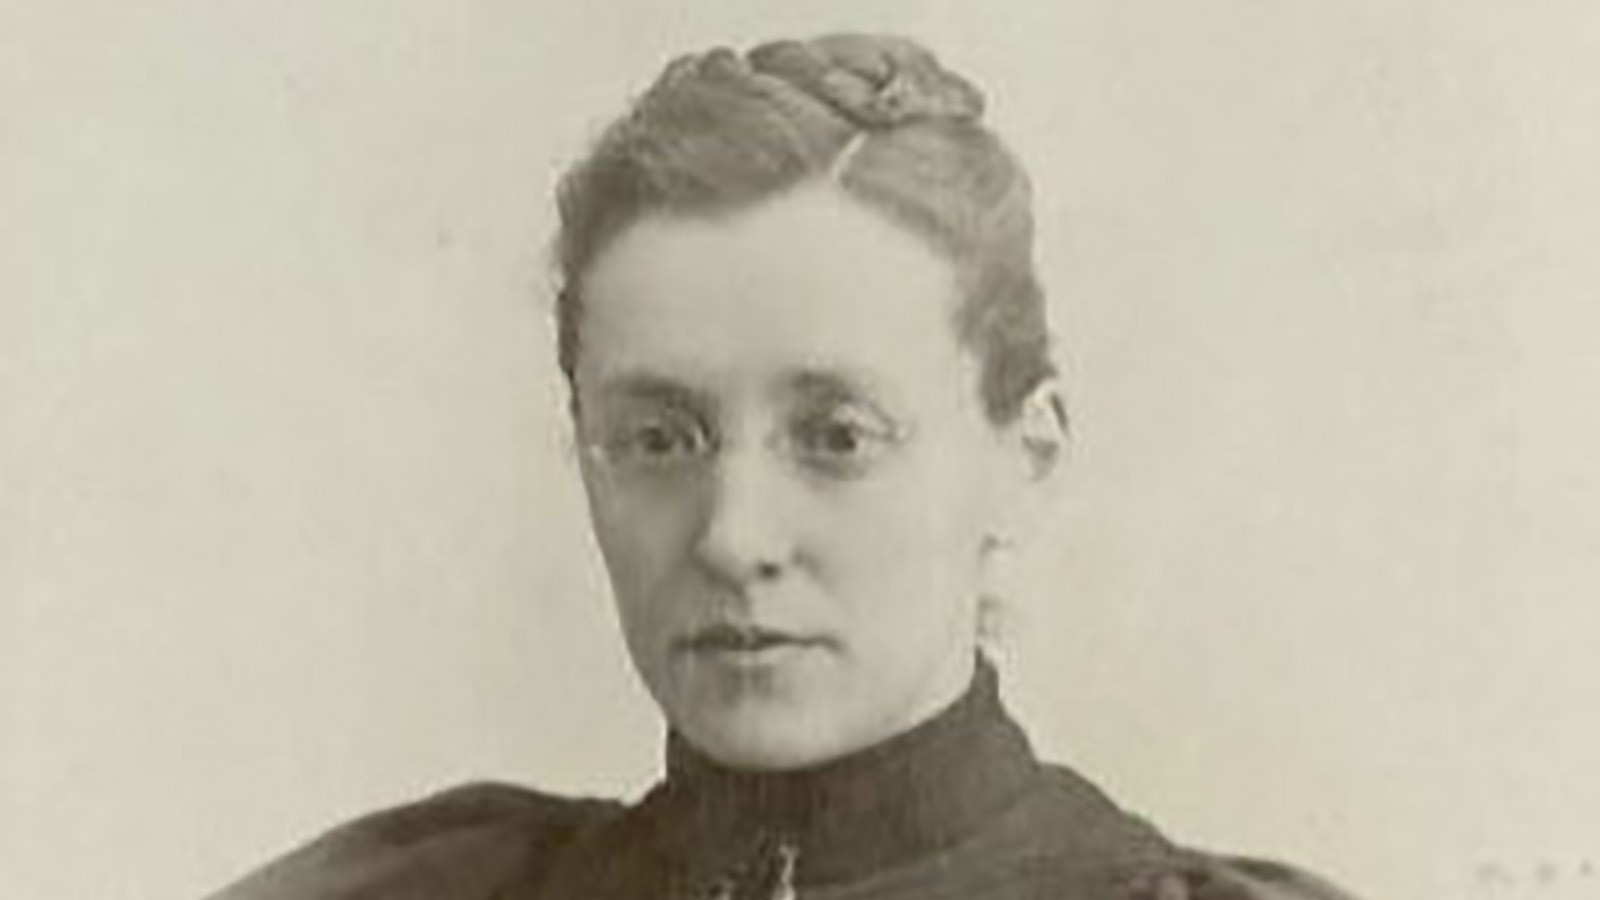 Sarah Walker Eddy was offered a position at the Utah Agricultural College in 1891.